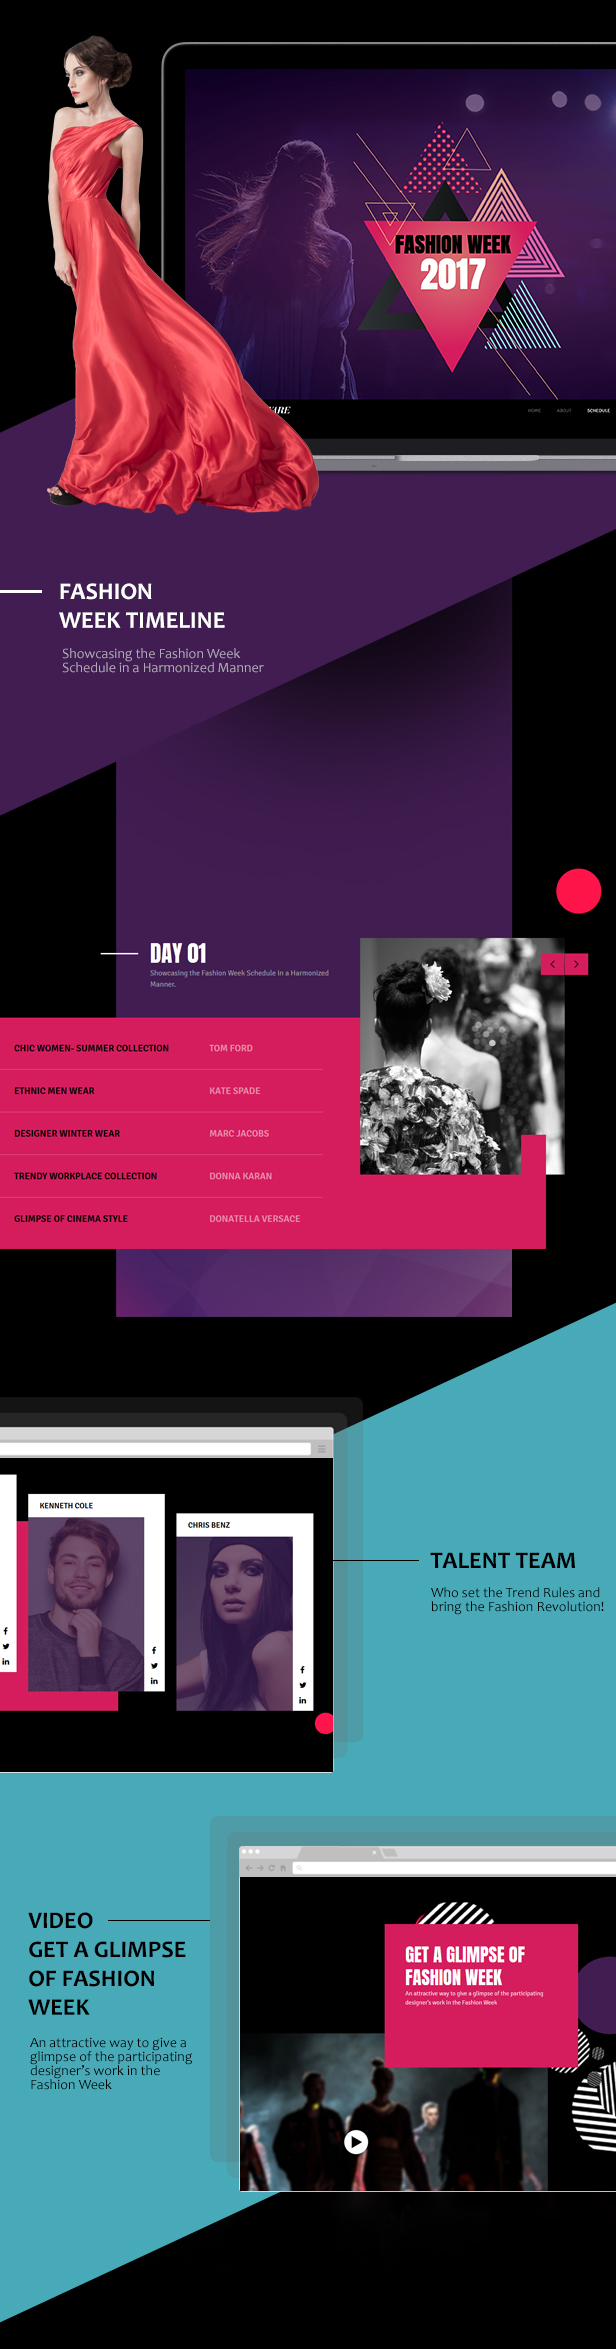 Free website templates for free download about (2,503) 75